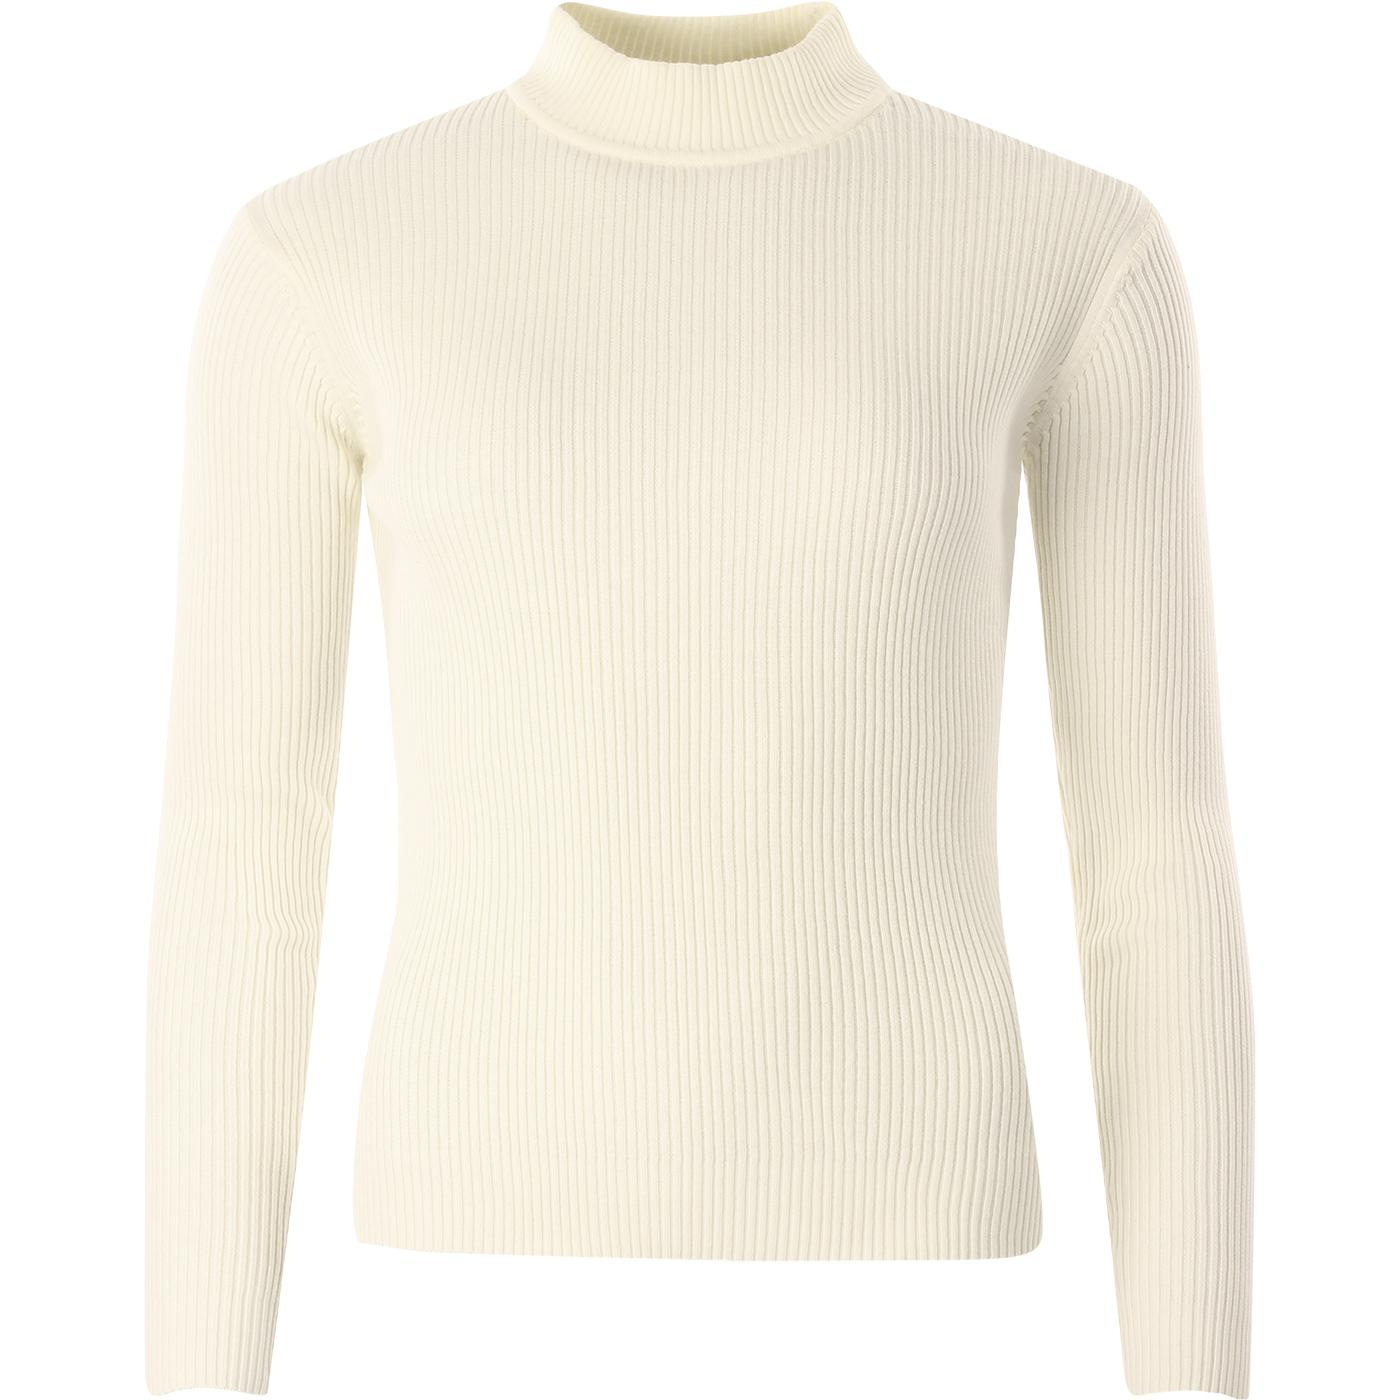 madcap england womens ribbed knit turtleneck long sleeve slim fit top winter white